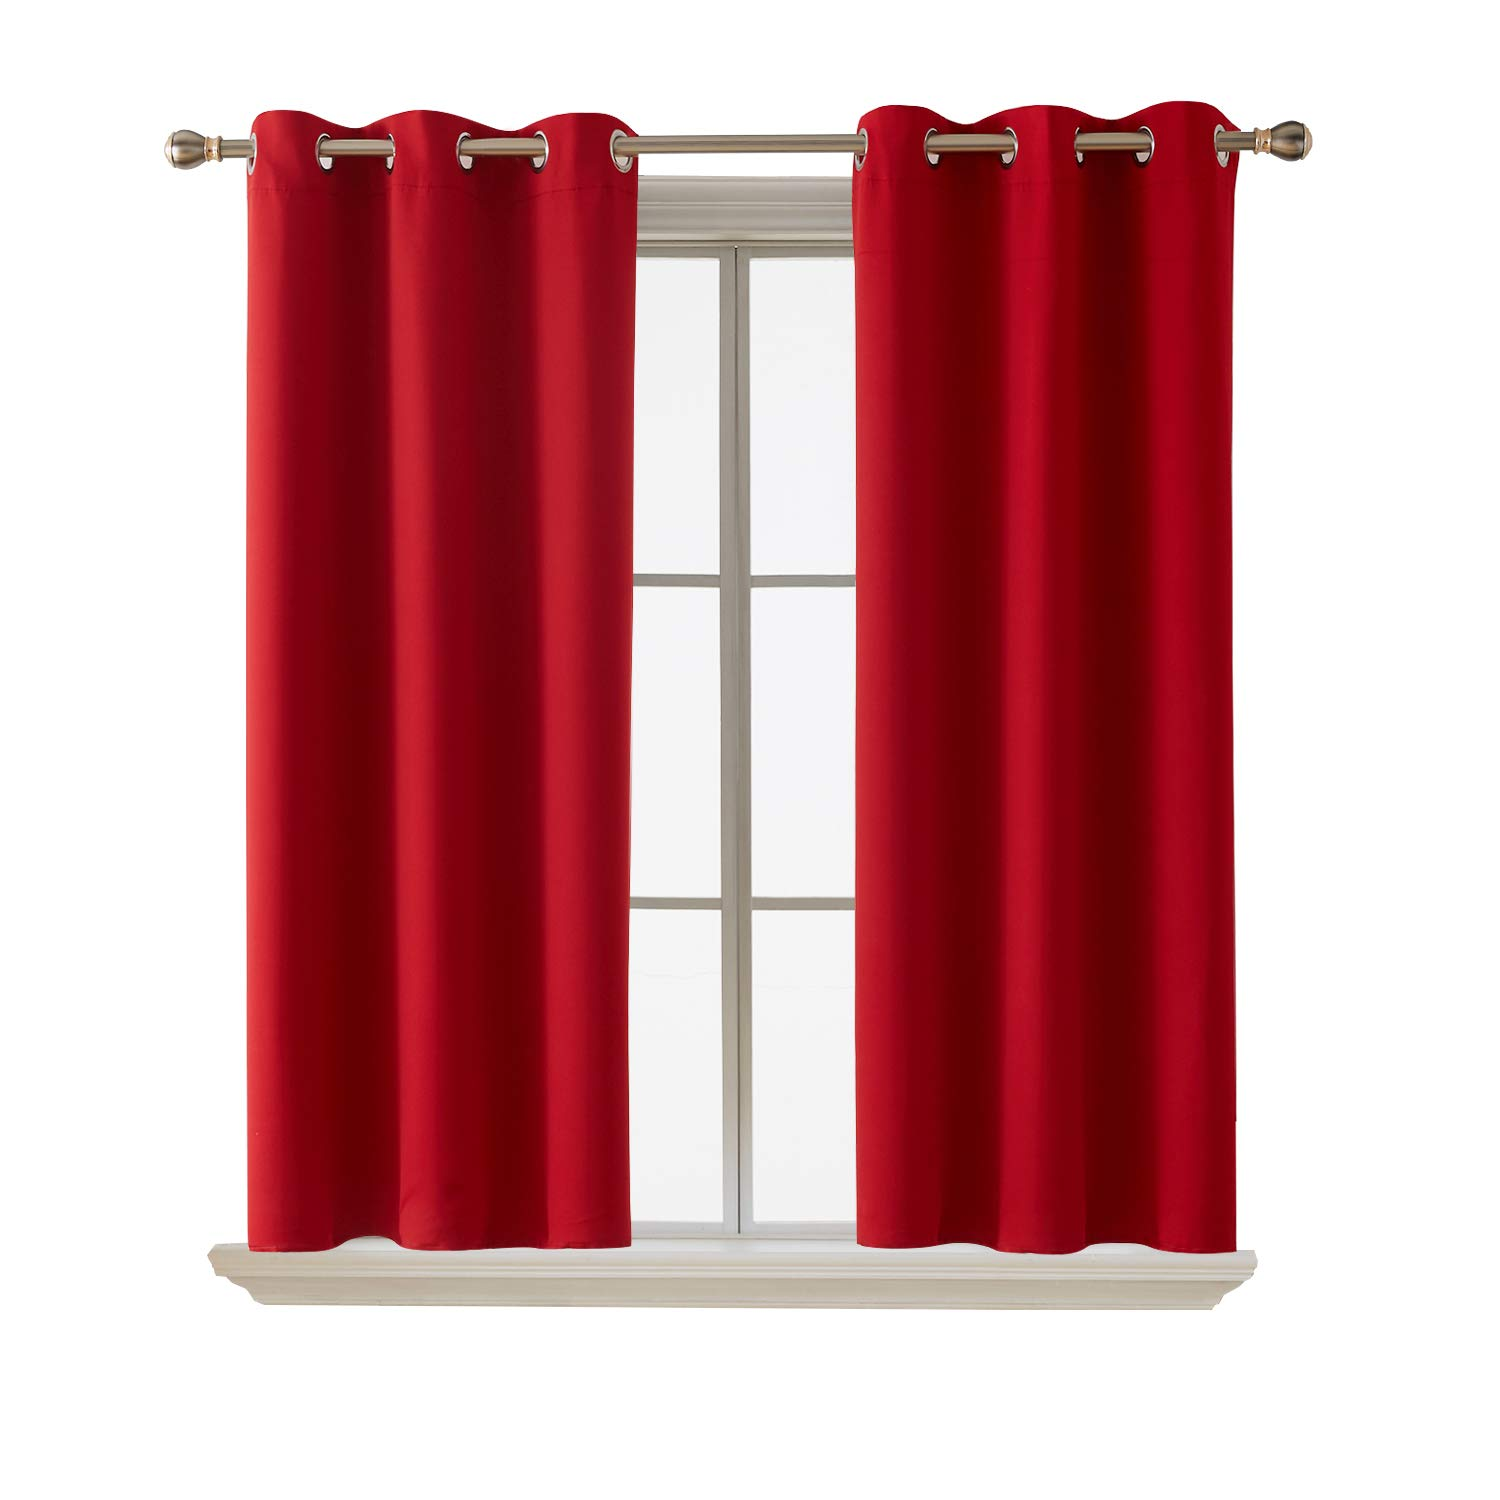 Deconovo Blackout Curtains Room Darkening Thermal Insulated Curtain Panels Grommet for Living Room Red 38 x 45 Inch 2 Panels